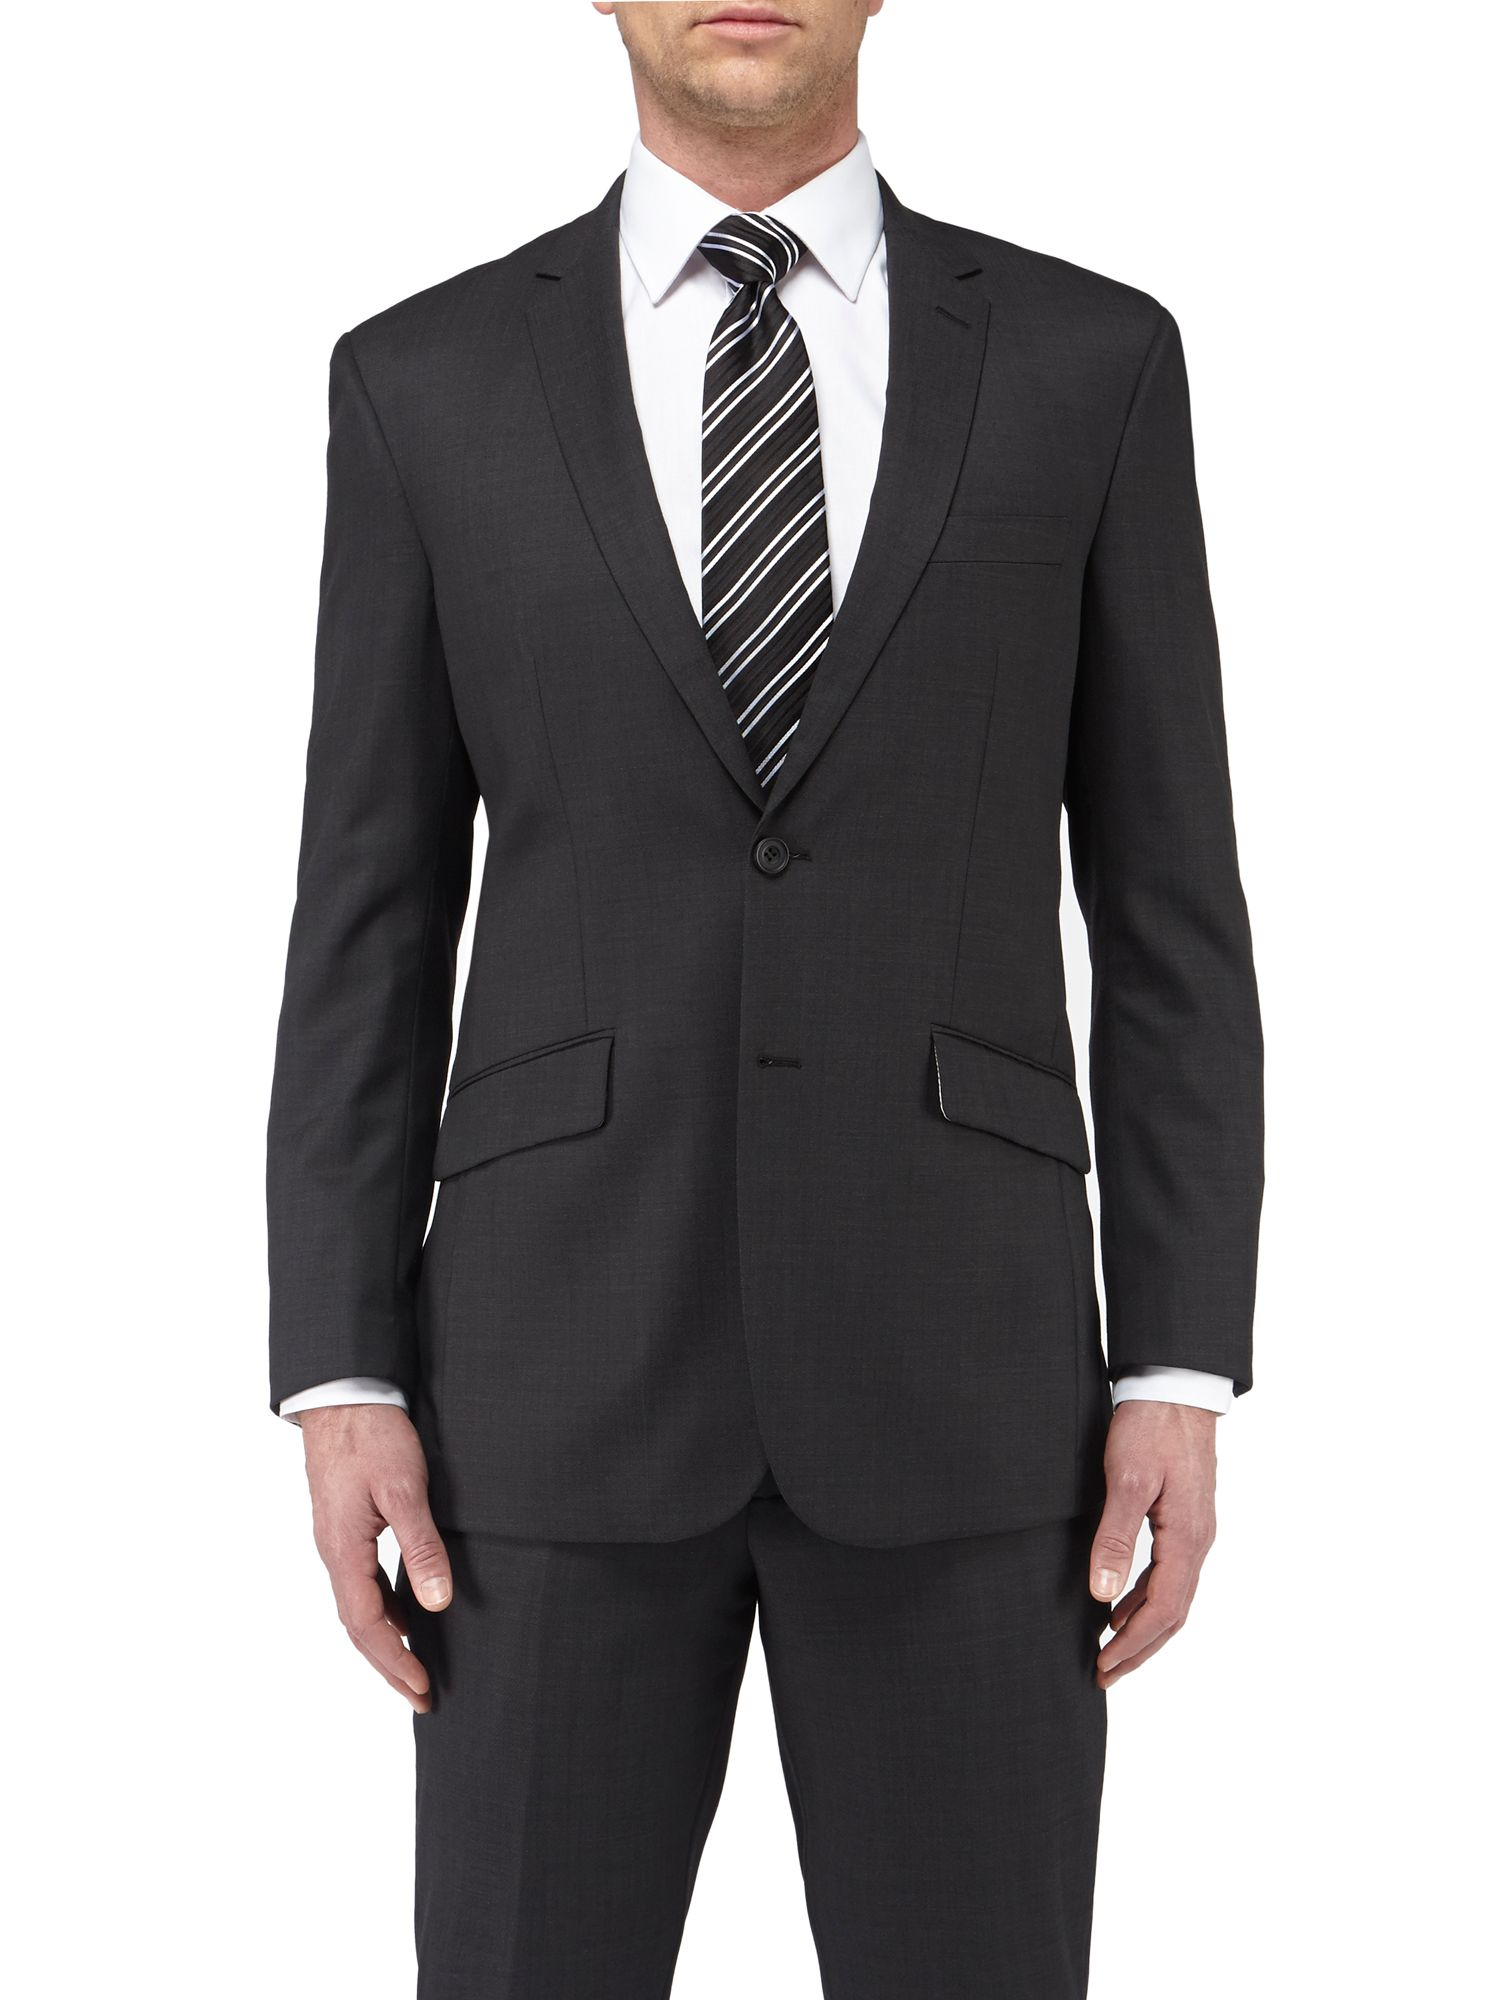 Haxby single breasted suit jacket